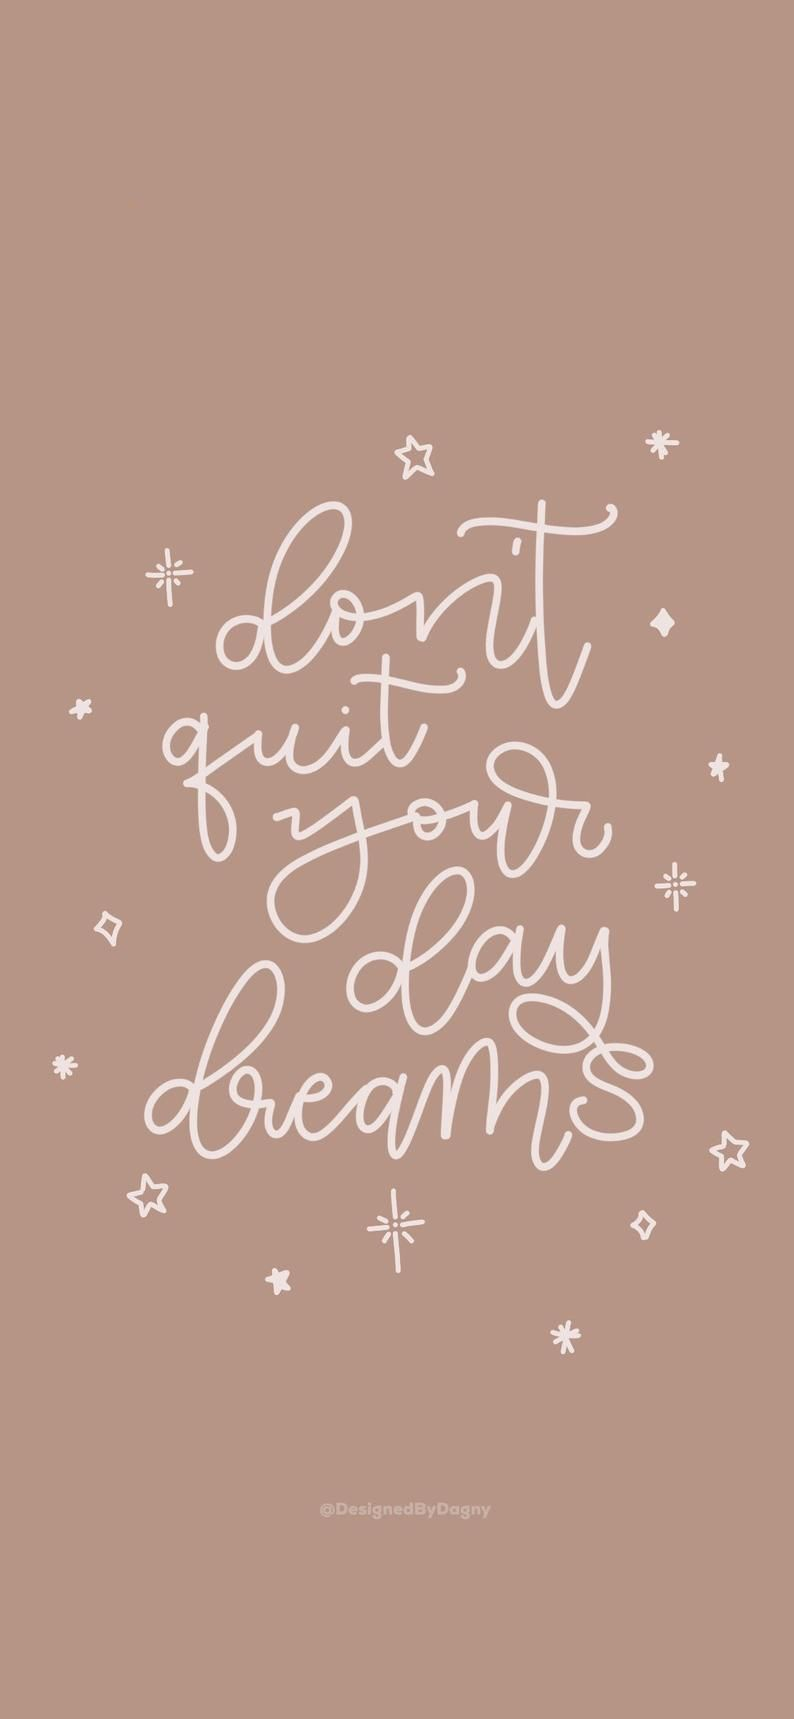 Don't Quit Your Daydreams iPhone Wallpaper, Cell Phone Wallpaper, phone background, Phone Wallpaper, iPhone background